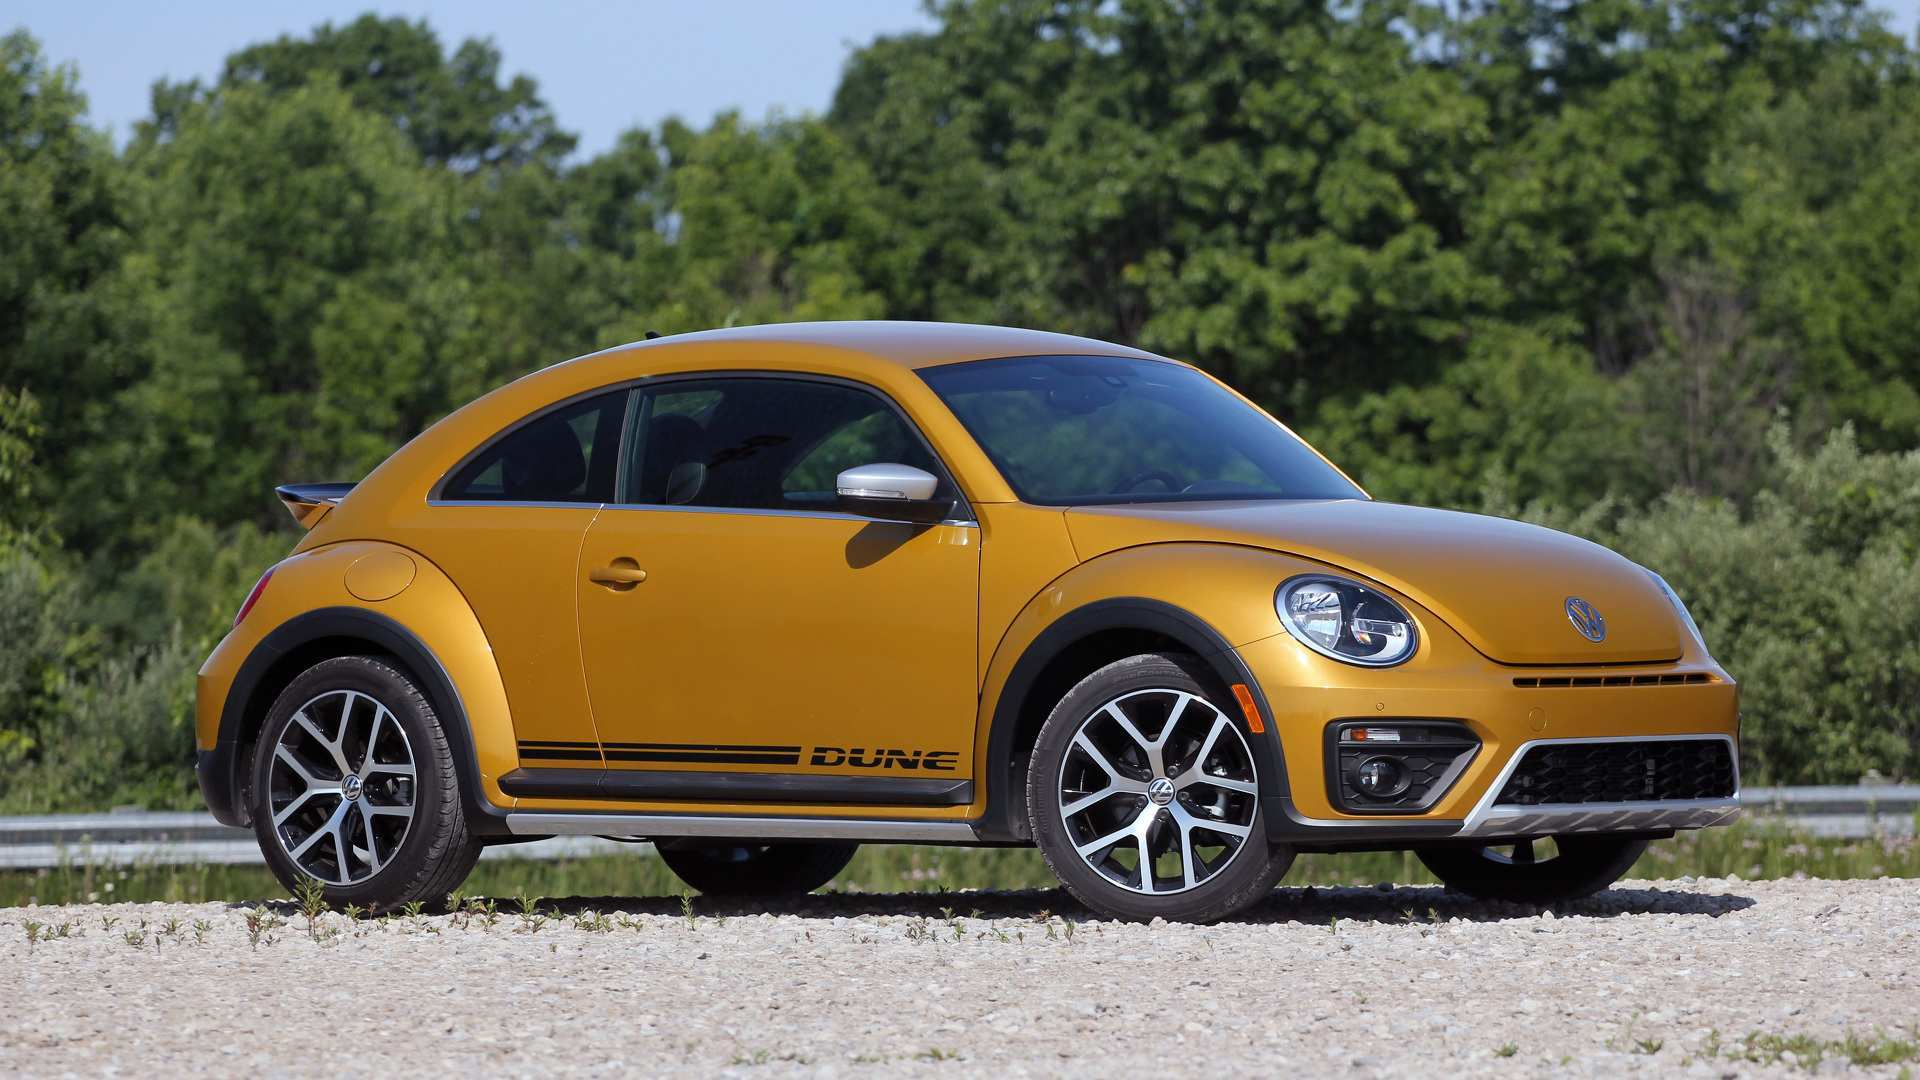 62 The 2020 Vw Beetle Dune Overview for 2020 Vw Beetle Dune